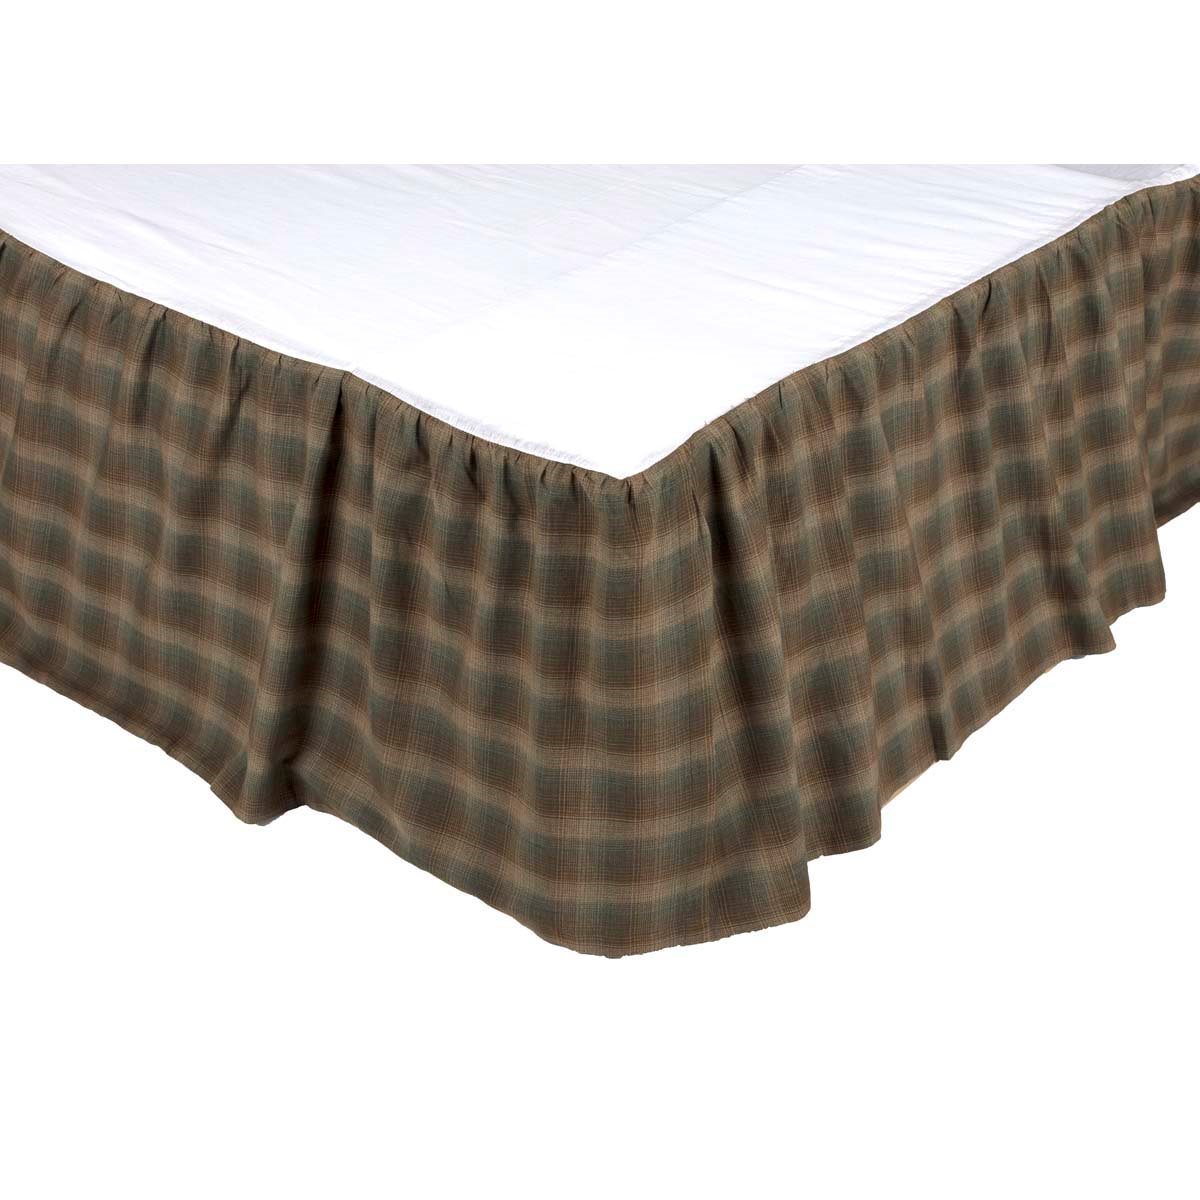 Seneca Queen Bed Skirt 60x80x16